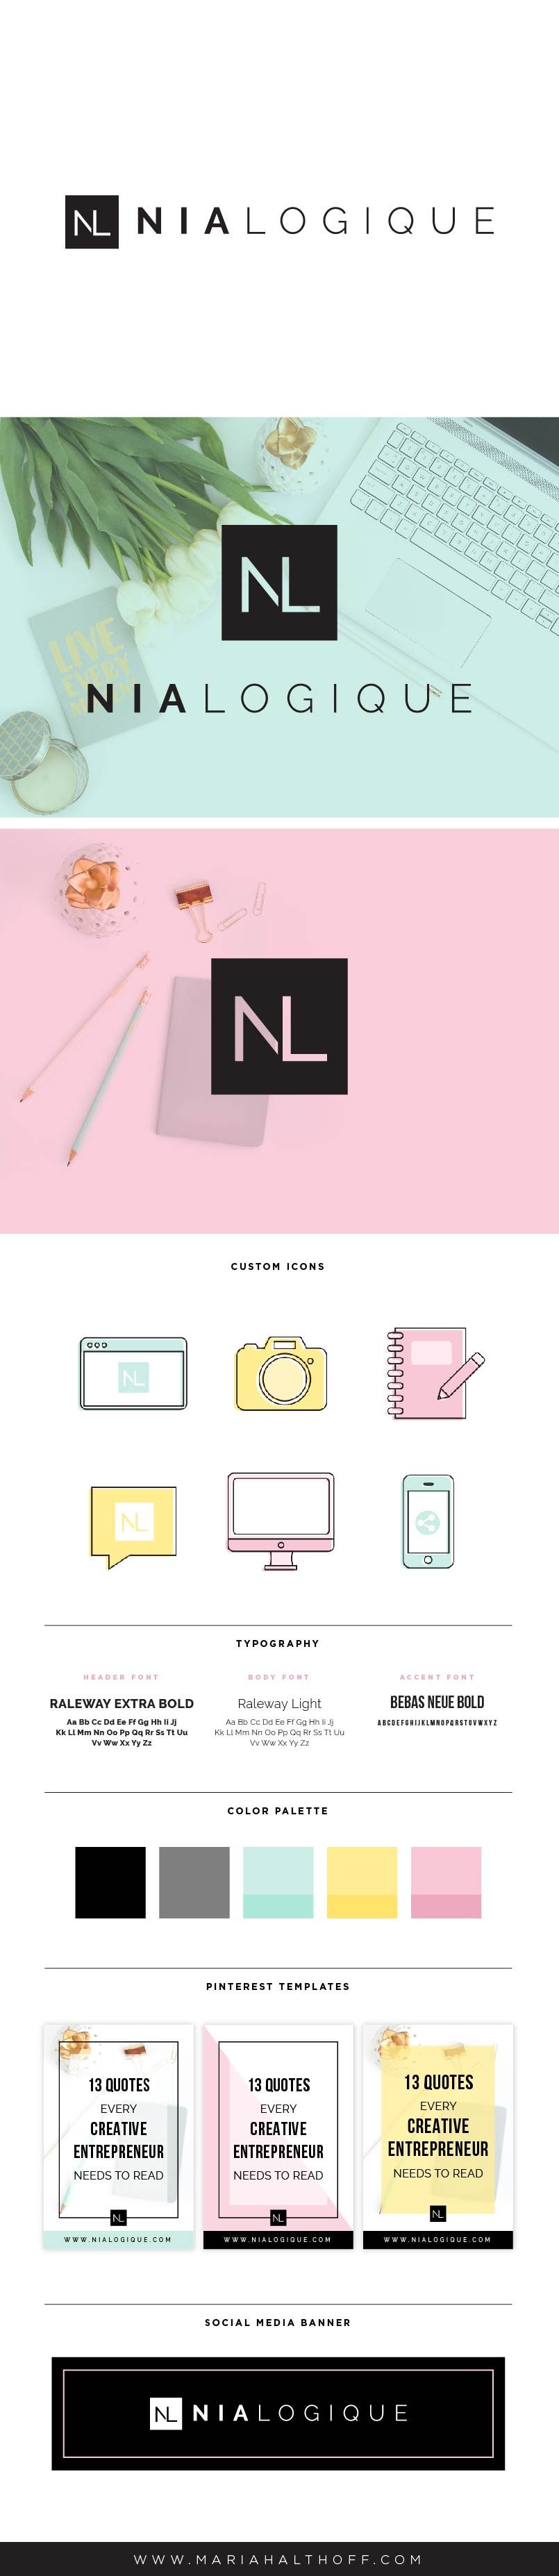 Logo and brand design – Nialogique